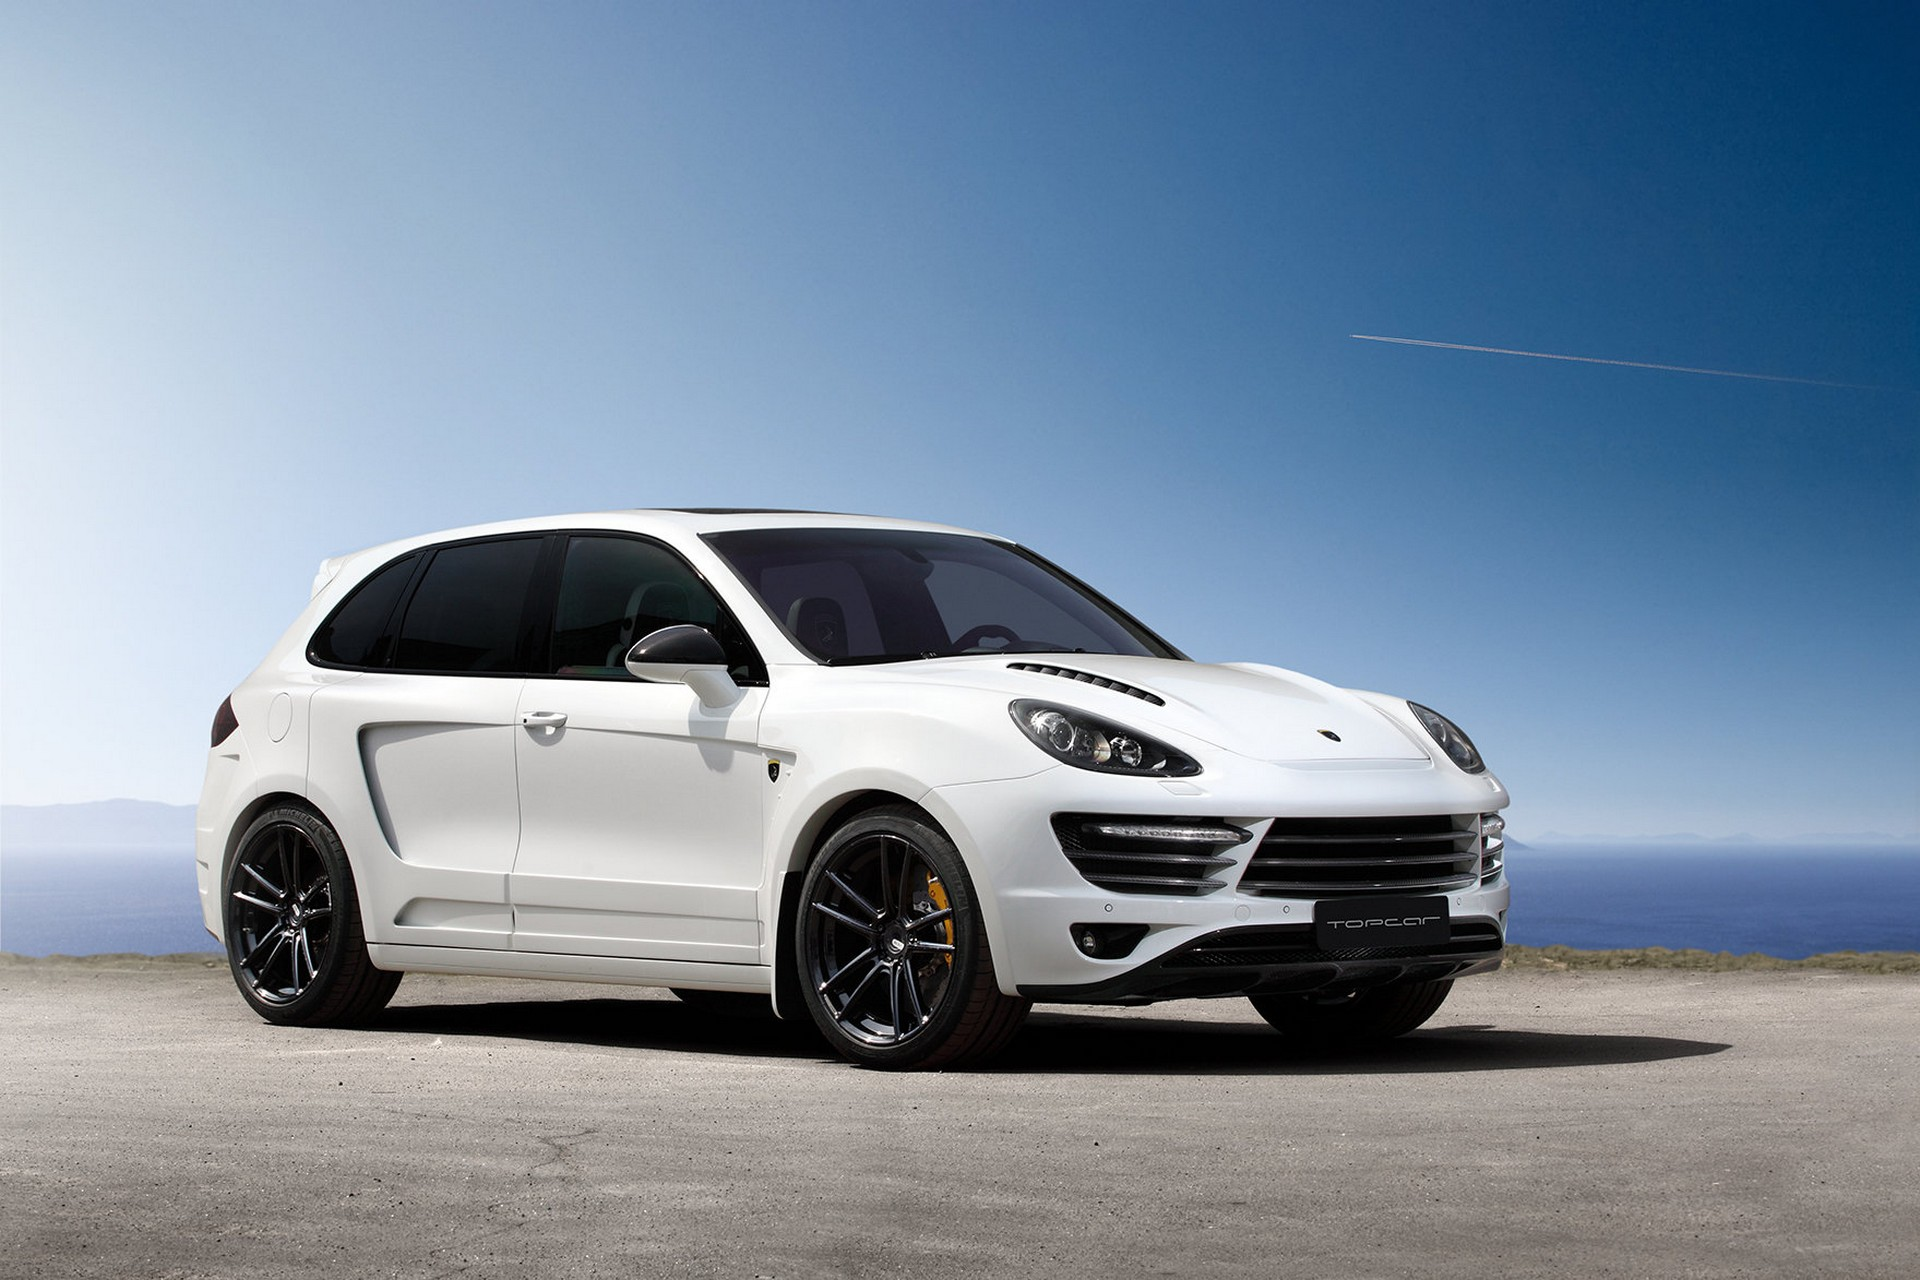 TopCar Tuning for Porsche Cayenne